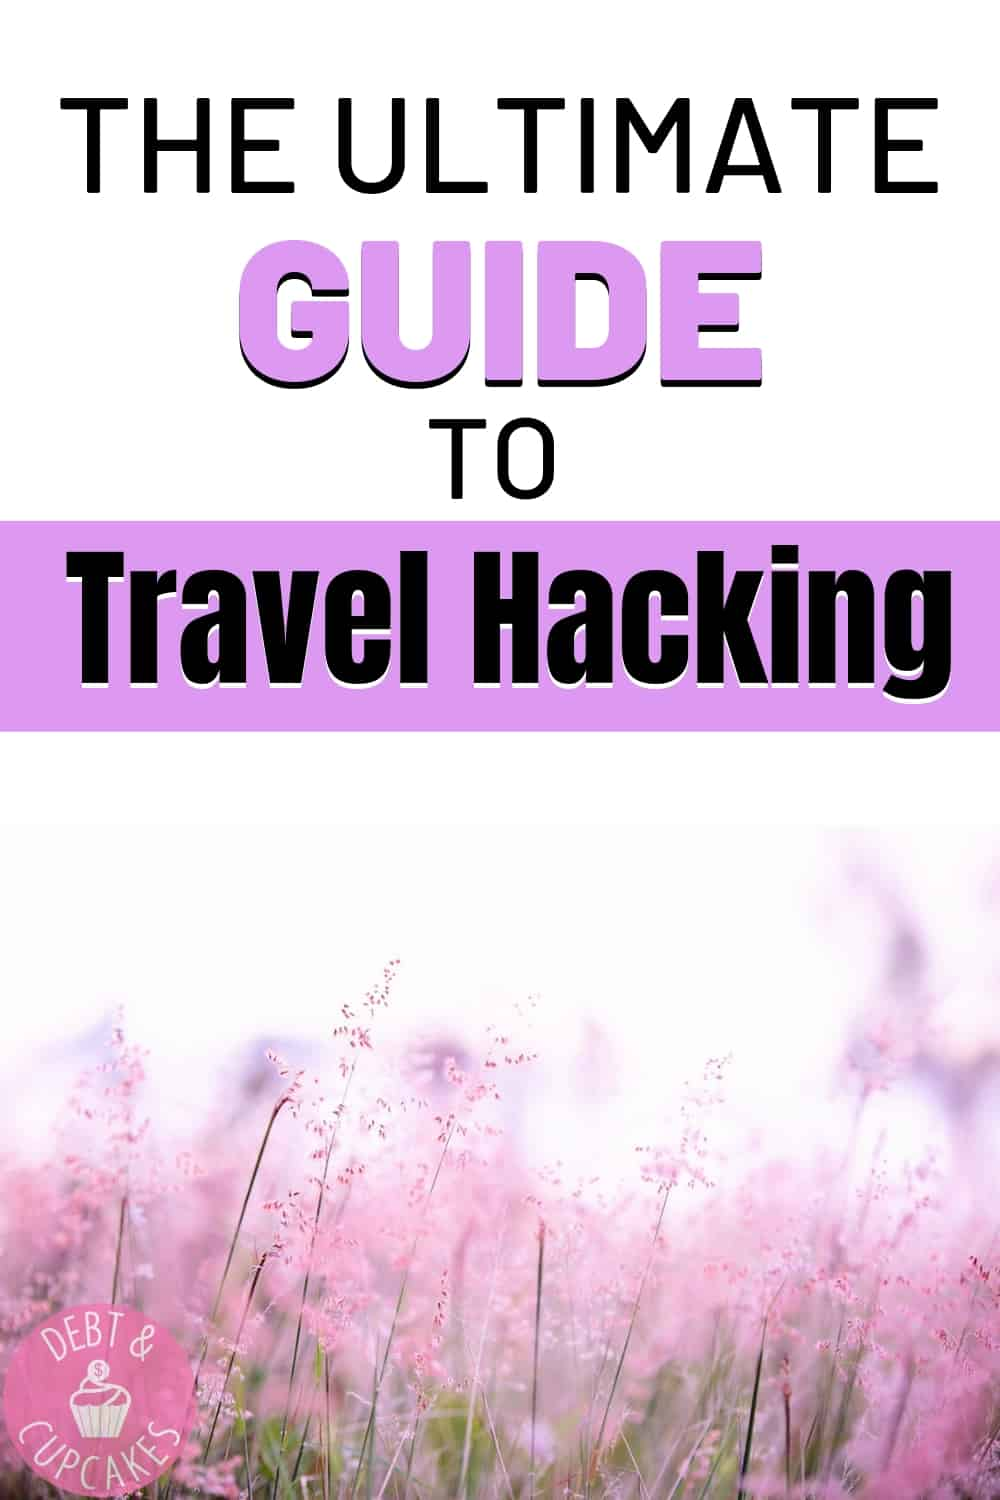 My life will never be the same after learning these travel life hacks. Seriously, you can save money and travel. These travel life hacks changed my life forever. YOU HAVE TO READ THIS!!